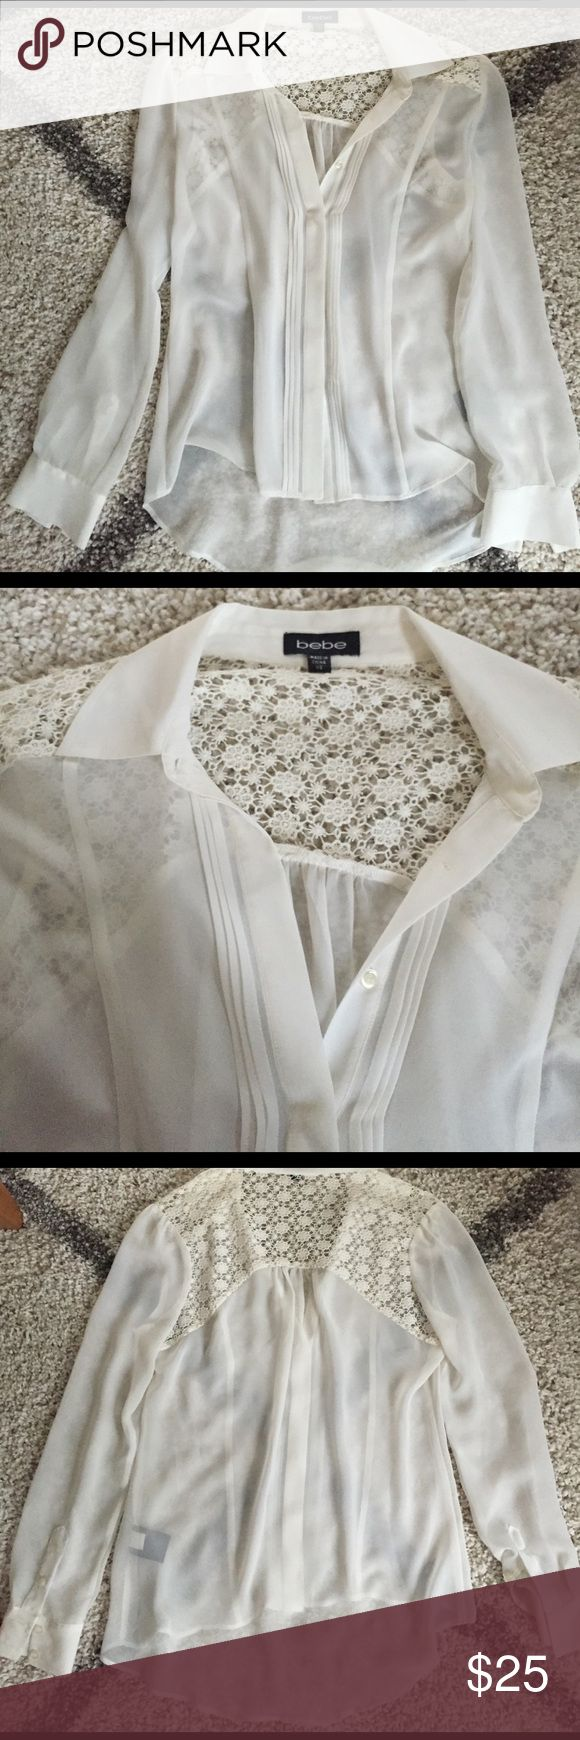 Bebe off white crochet button up shirt size XS Bebe off white crochet button up shirt size XS. Worn one time. Perfect condition! Sheer. 100% polyester. Tag says dry clean but you can probably gently hand wash. Shoulders are crochet. Can't remember exact price I bought it for but it's a ballpark. bebe Tops Button Down Shirts